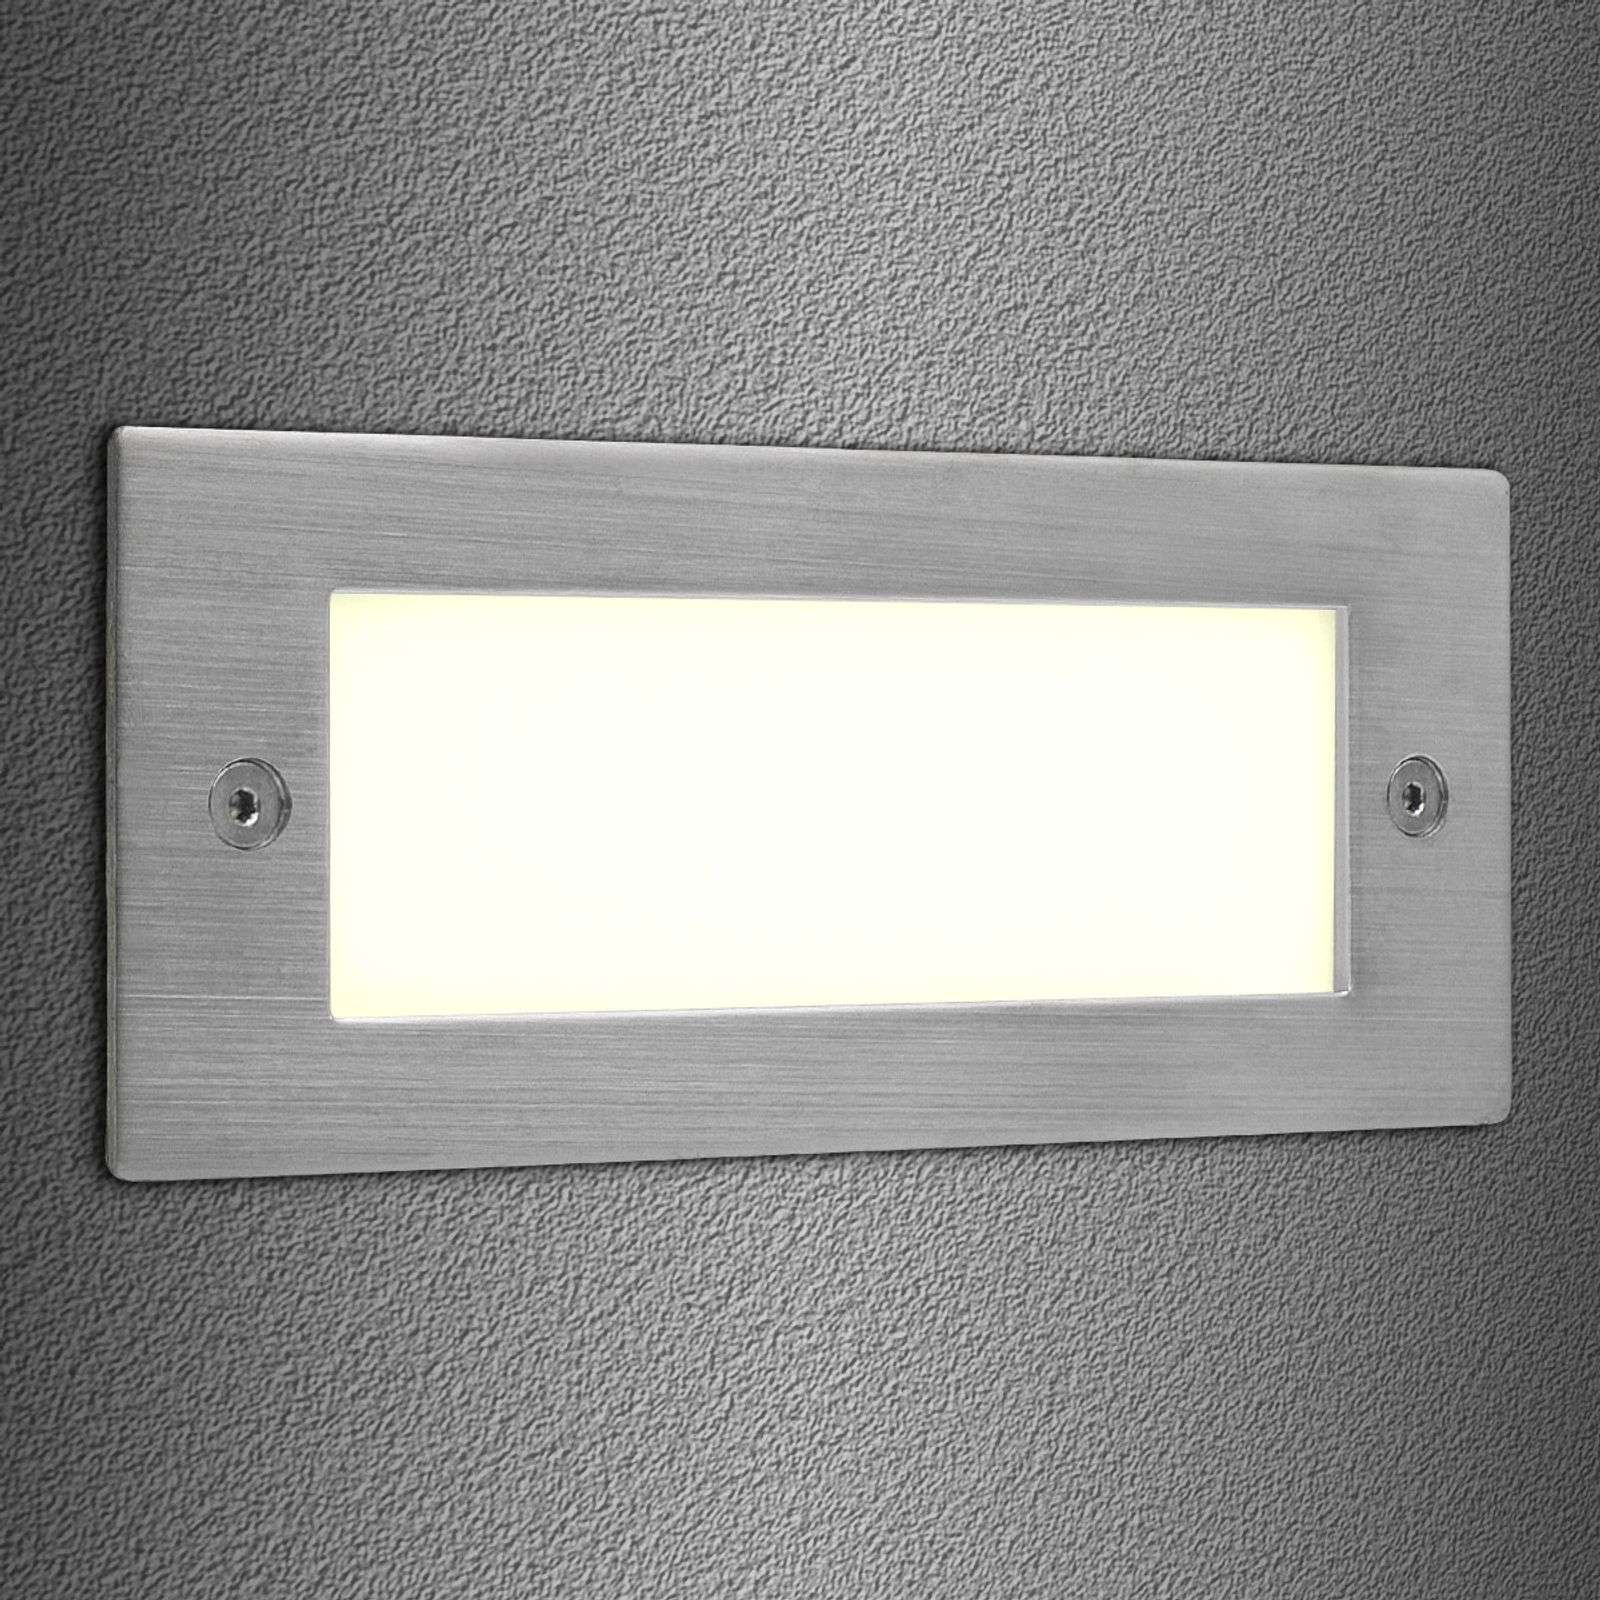 Wandinbouwspot Brick LED 16 warmwit